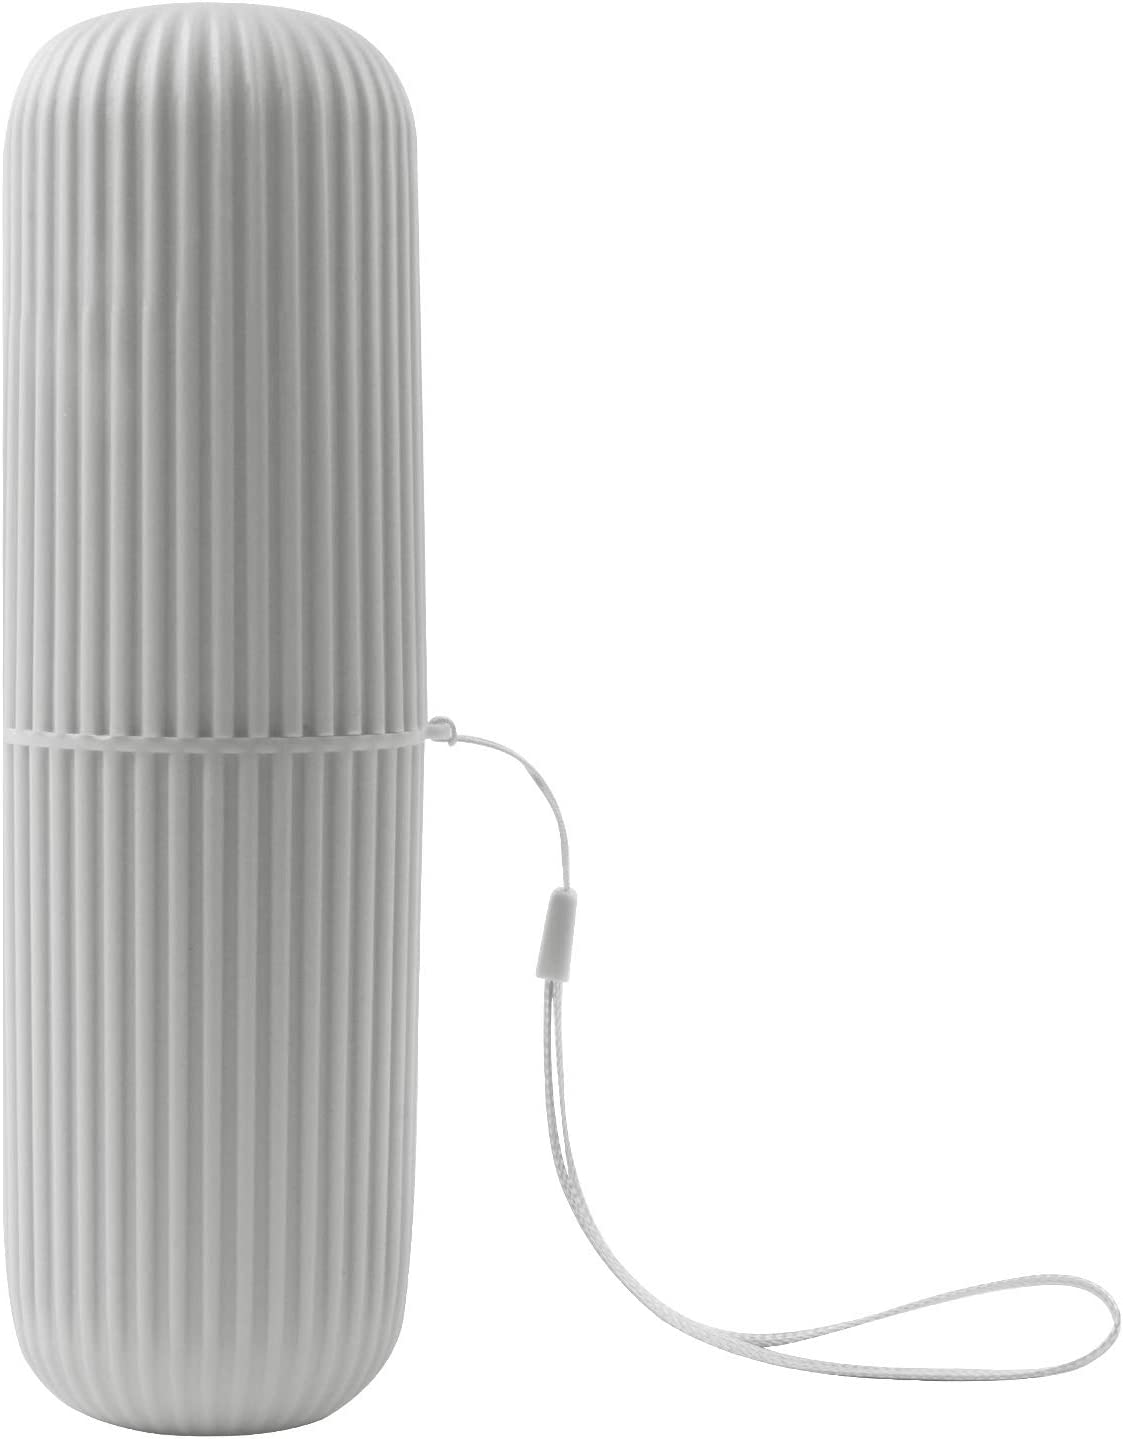 Travel Toothbrush Case, Toothbrush Holder Plastic Storage Box Toothpaste Container Portable Wash Cup with Picking Sling for Business Trips and Daily Us(Grey)